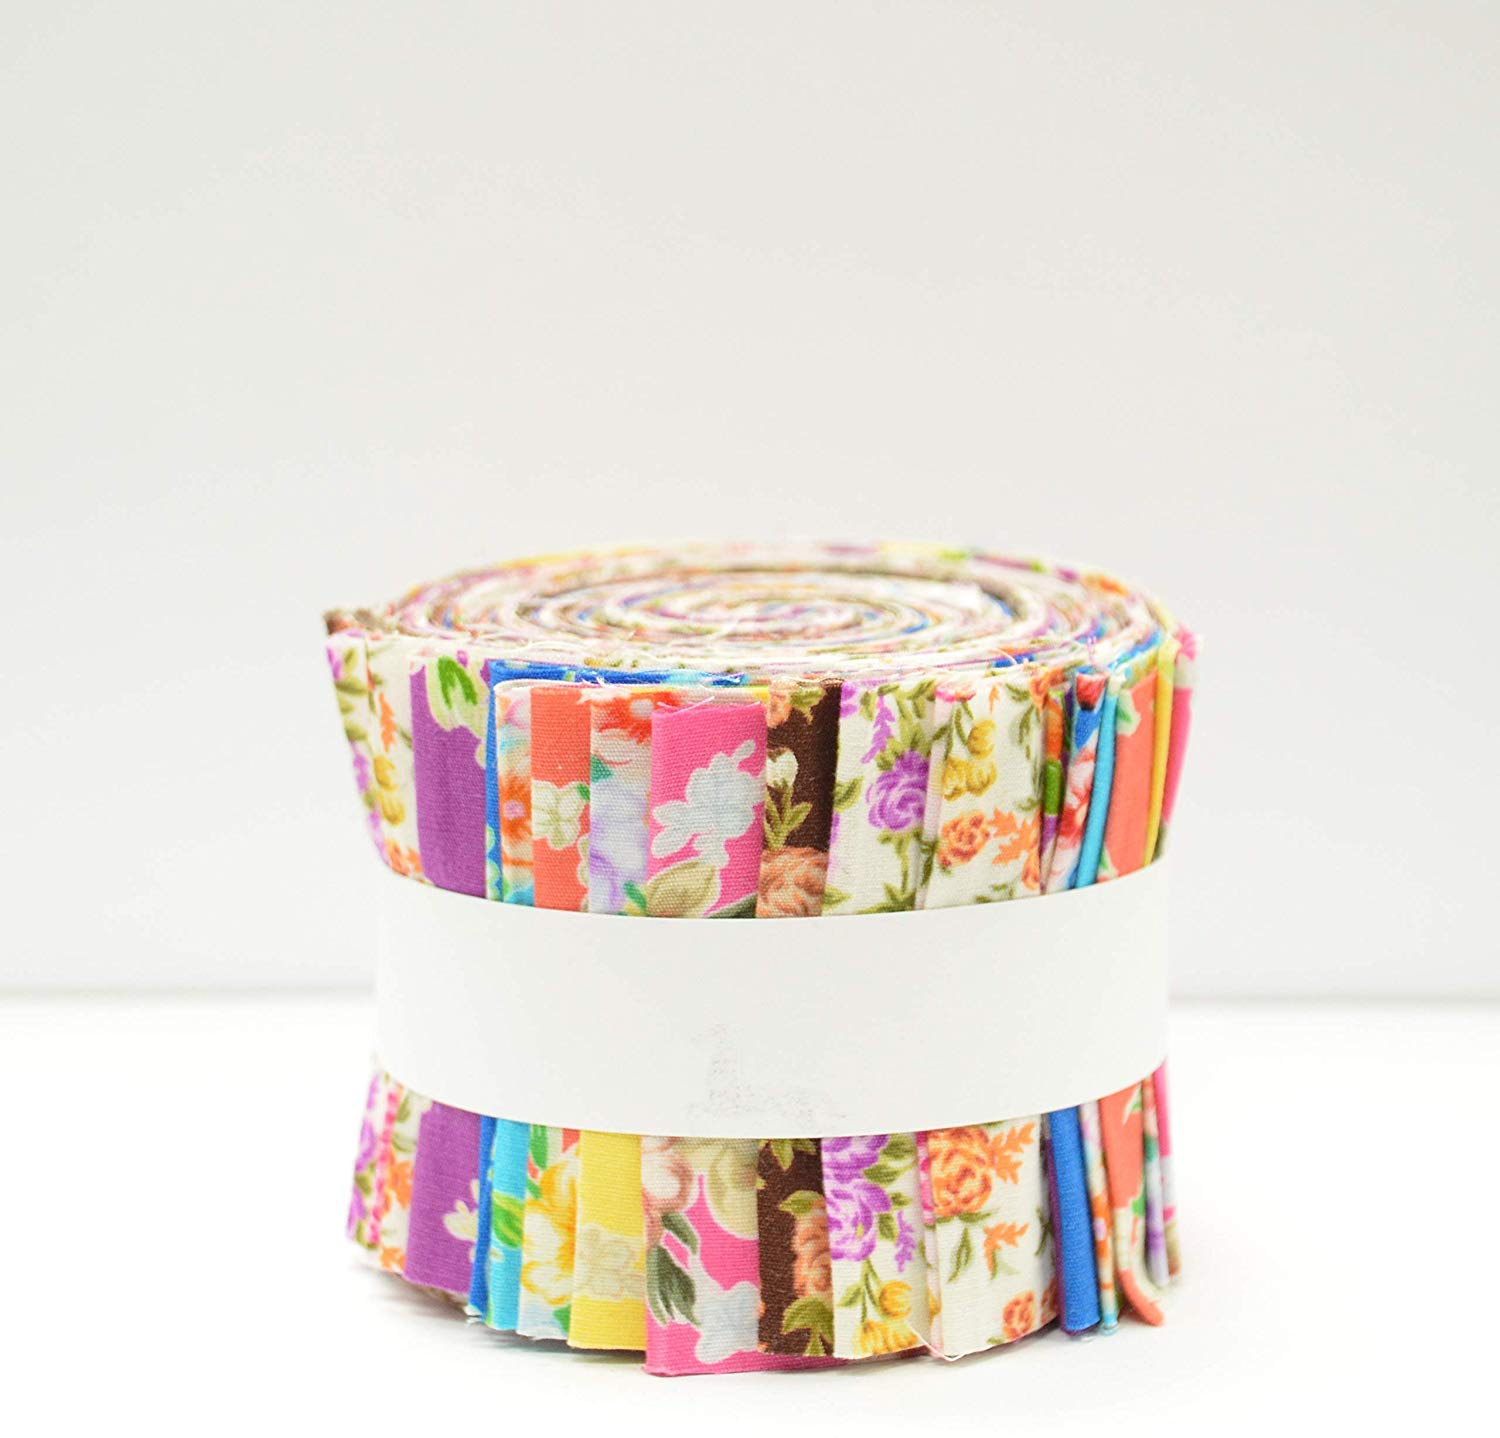 Kids Print Jelly Rolls Fabric for Quilting Polycotton Material Patchwork 2.5 W x 45 L 20 Strips Bundle Craft